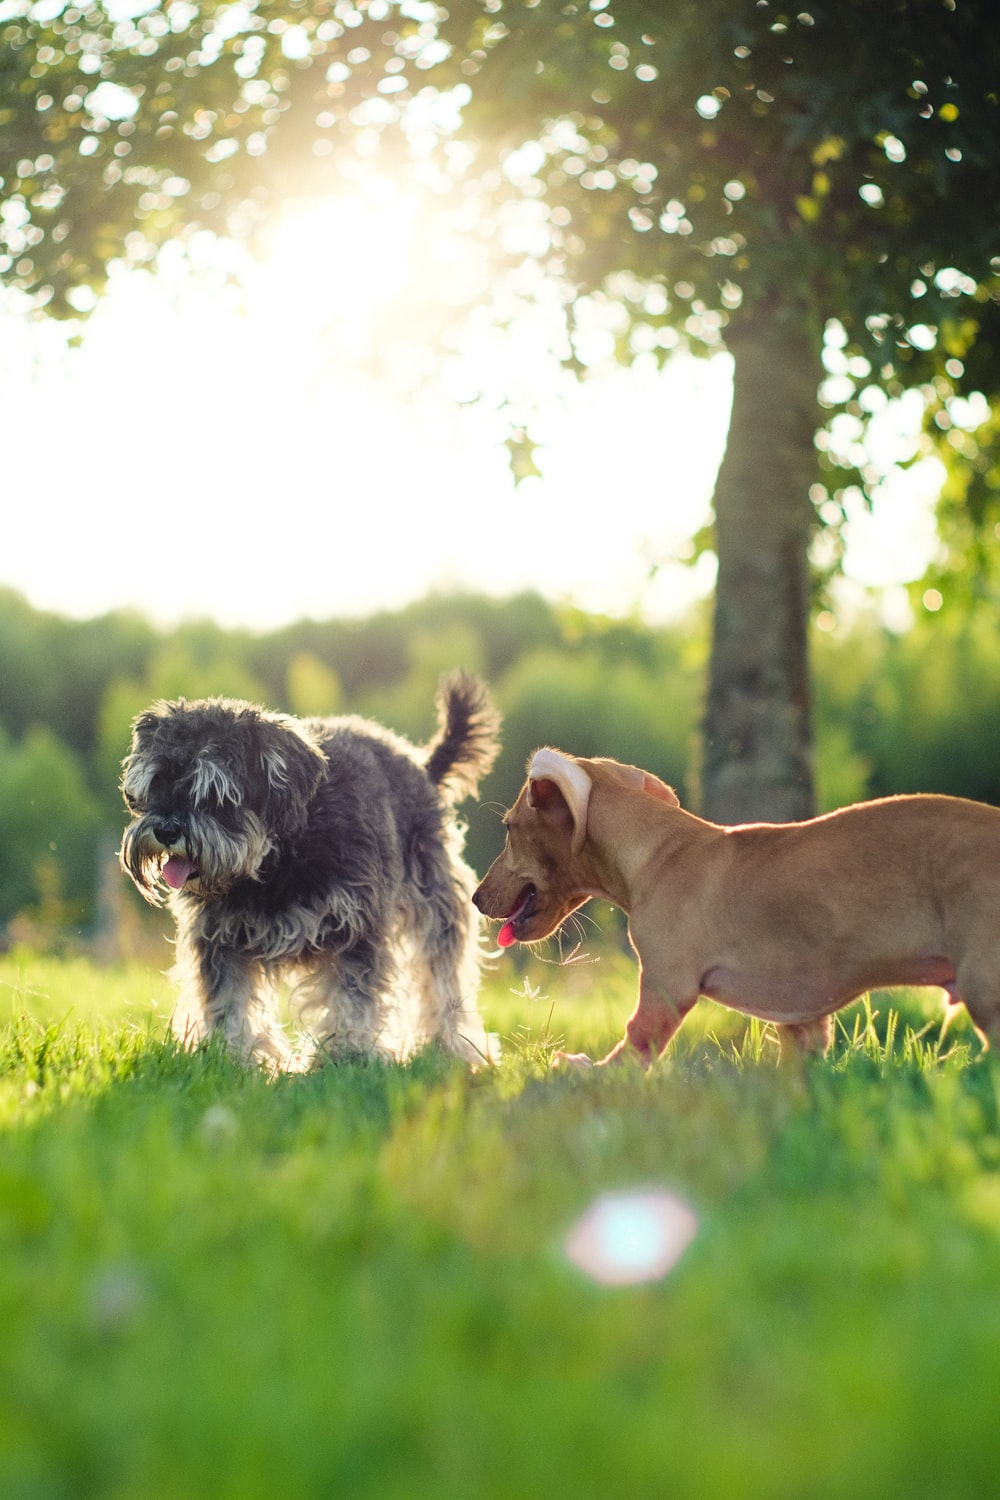 brown short coated dog on green grass field during daytime